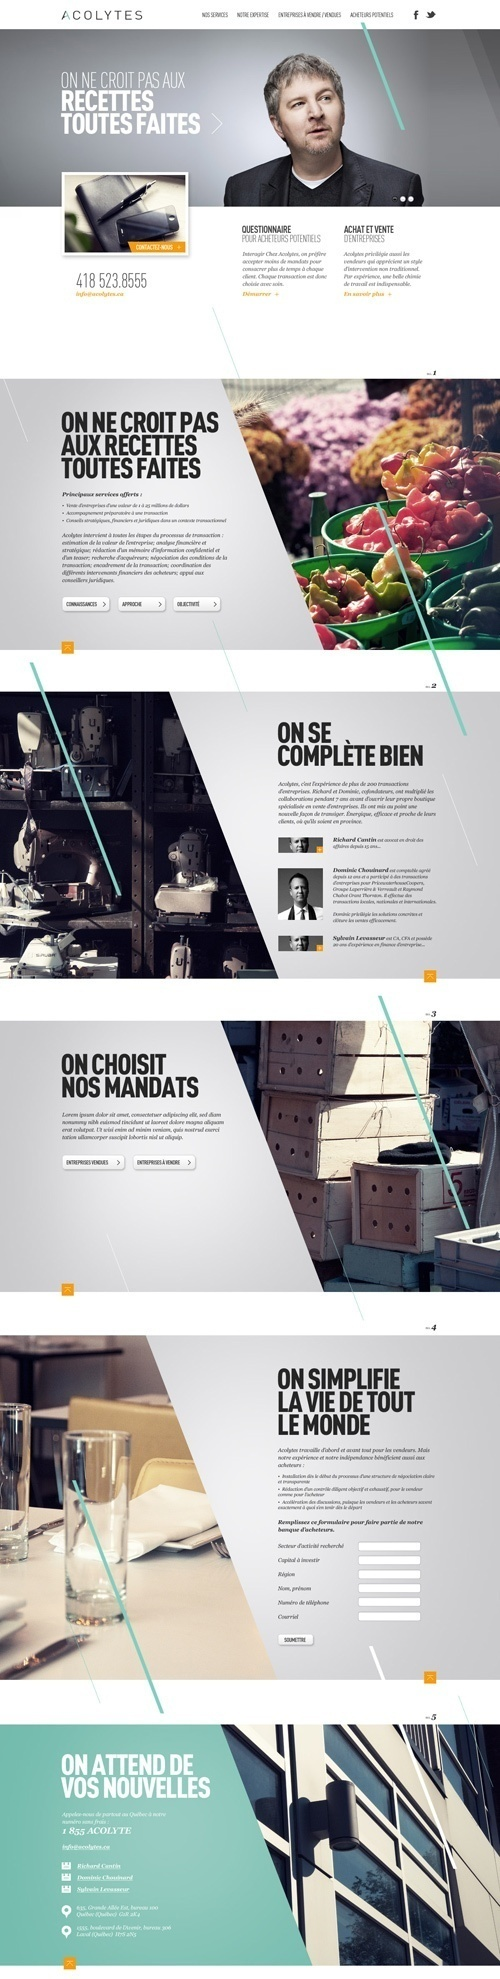 Web Design / Acolytes by Alexandre Desjardins, via Behance #website